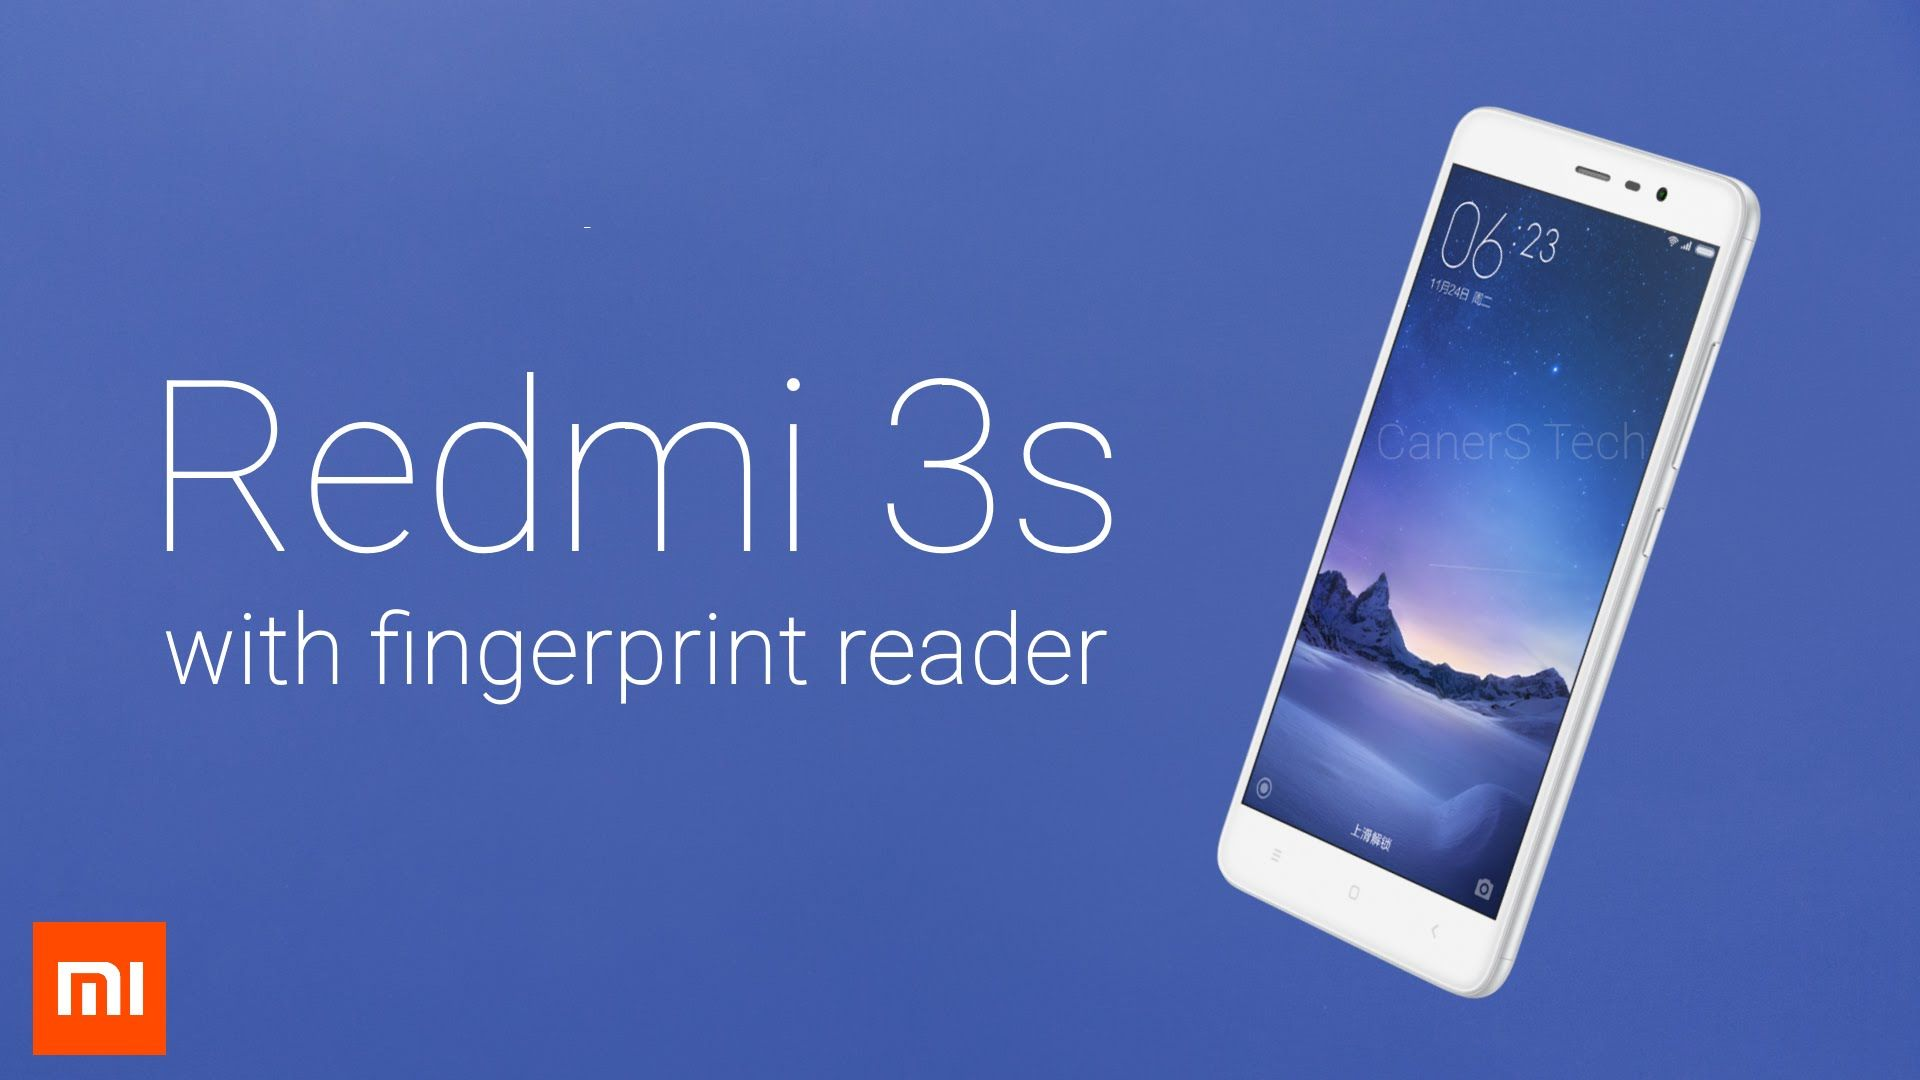 xiaomi redmi 3s smartphone launched with fingerprint sensor